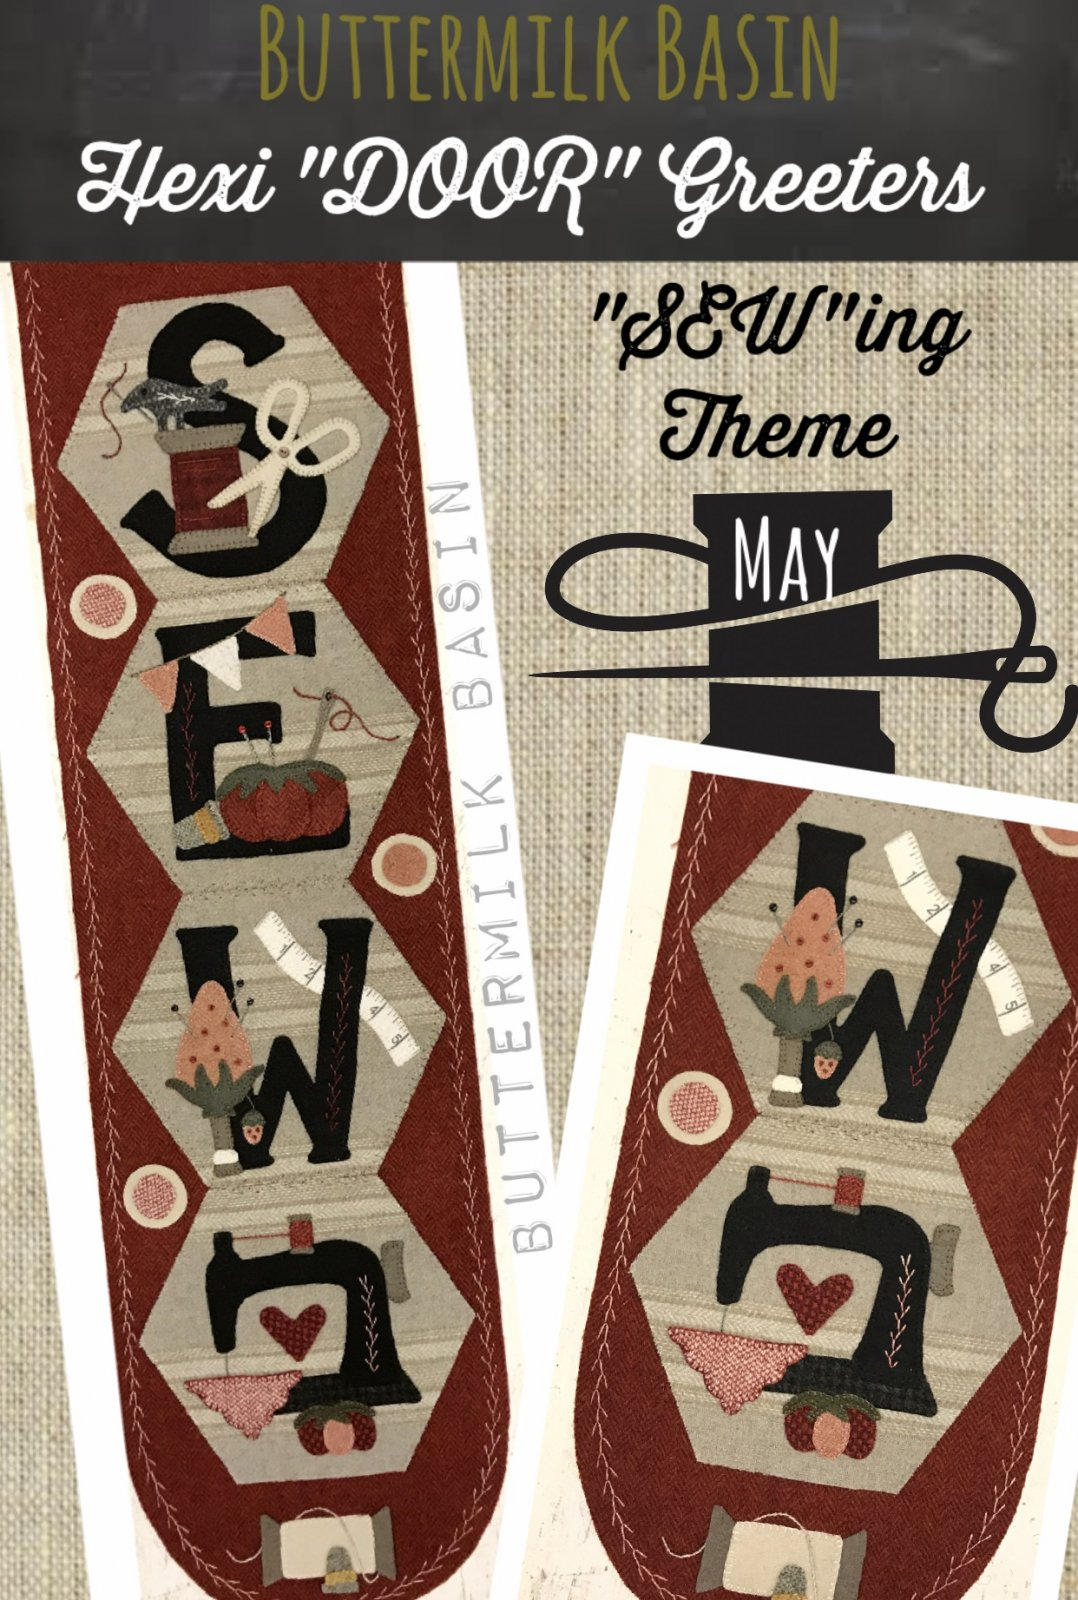 A Year of Hexi WORD Door Greeters * May Pattern